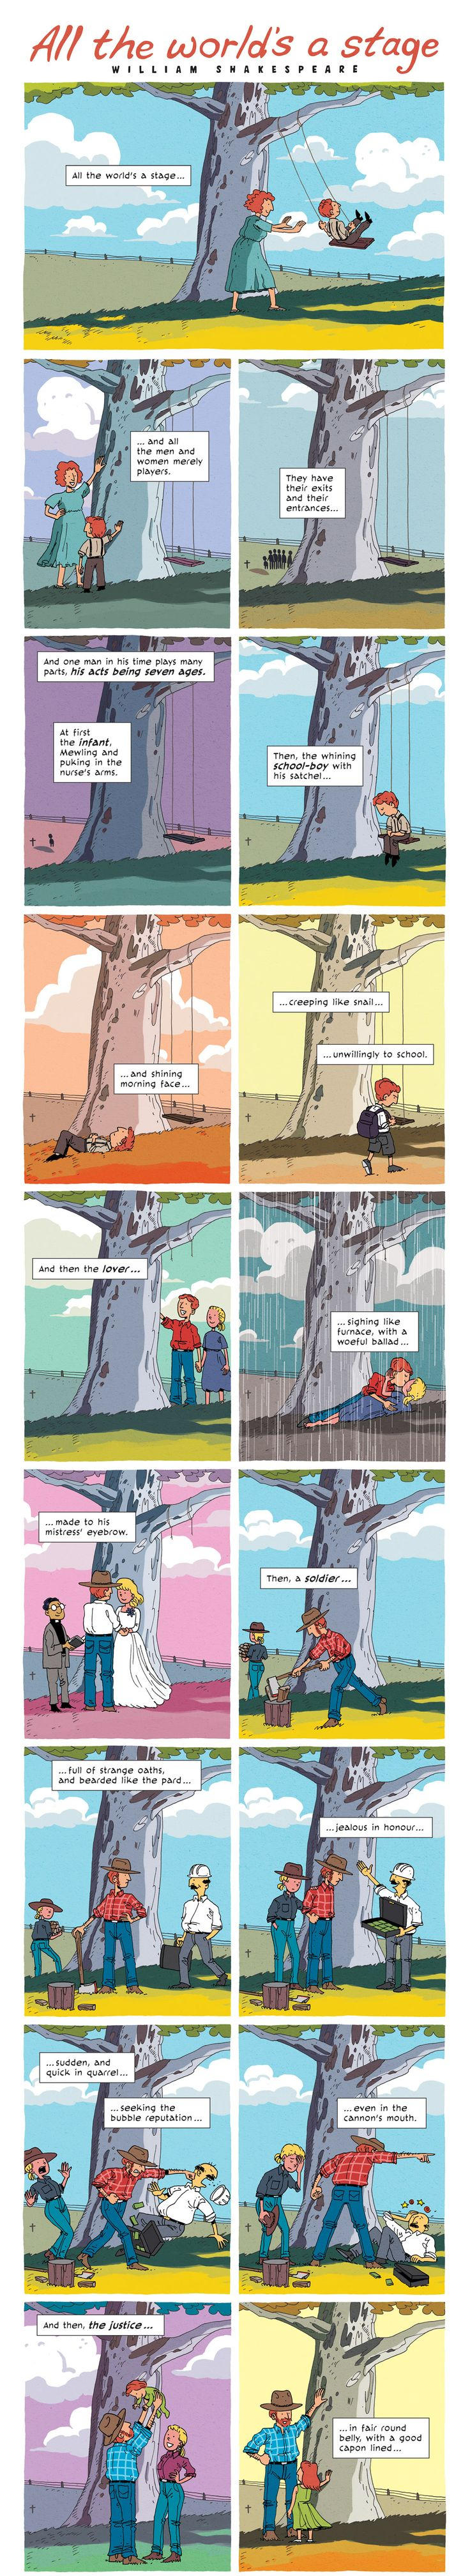 A favourite passage, rendered beautifully and heart-wrenchingly. If you haven't read Zen Pencils, today is a perfect day to start.